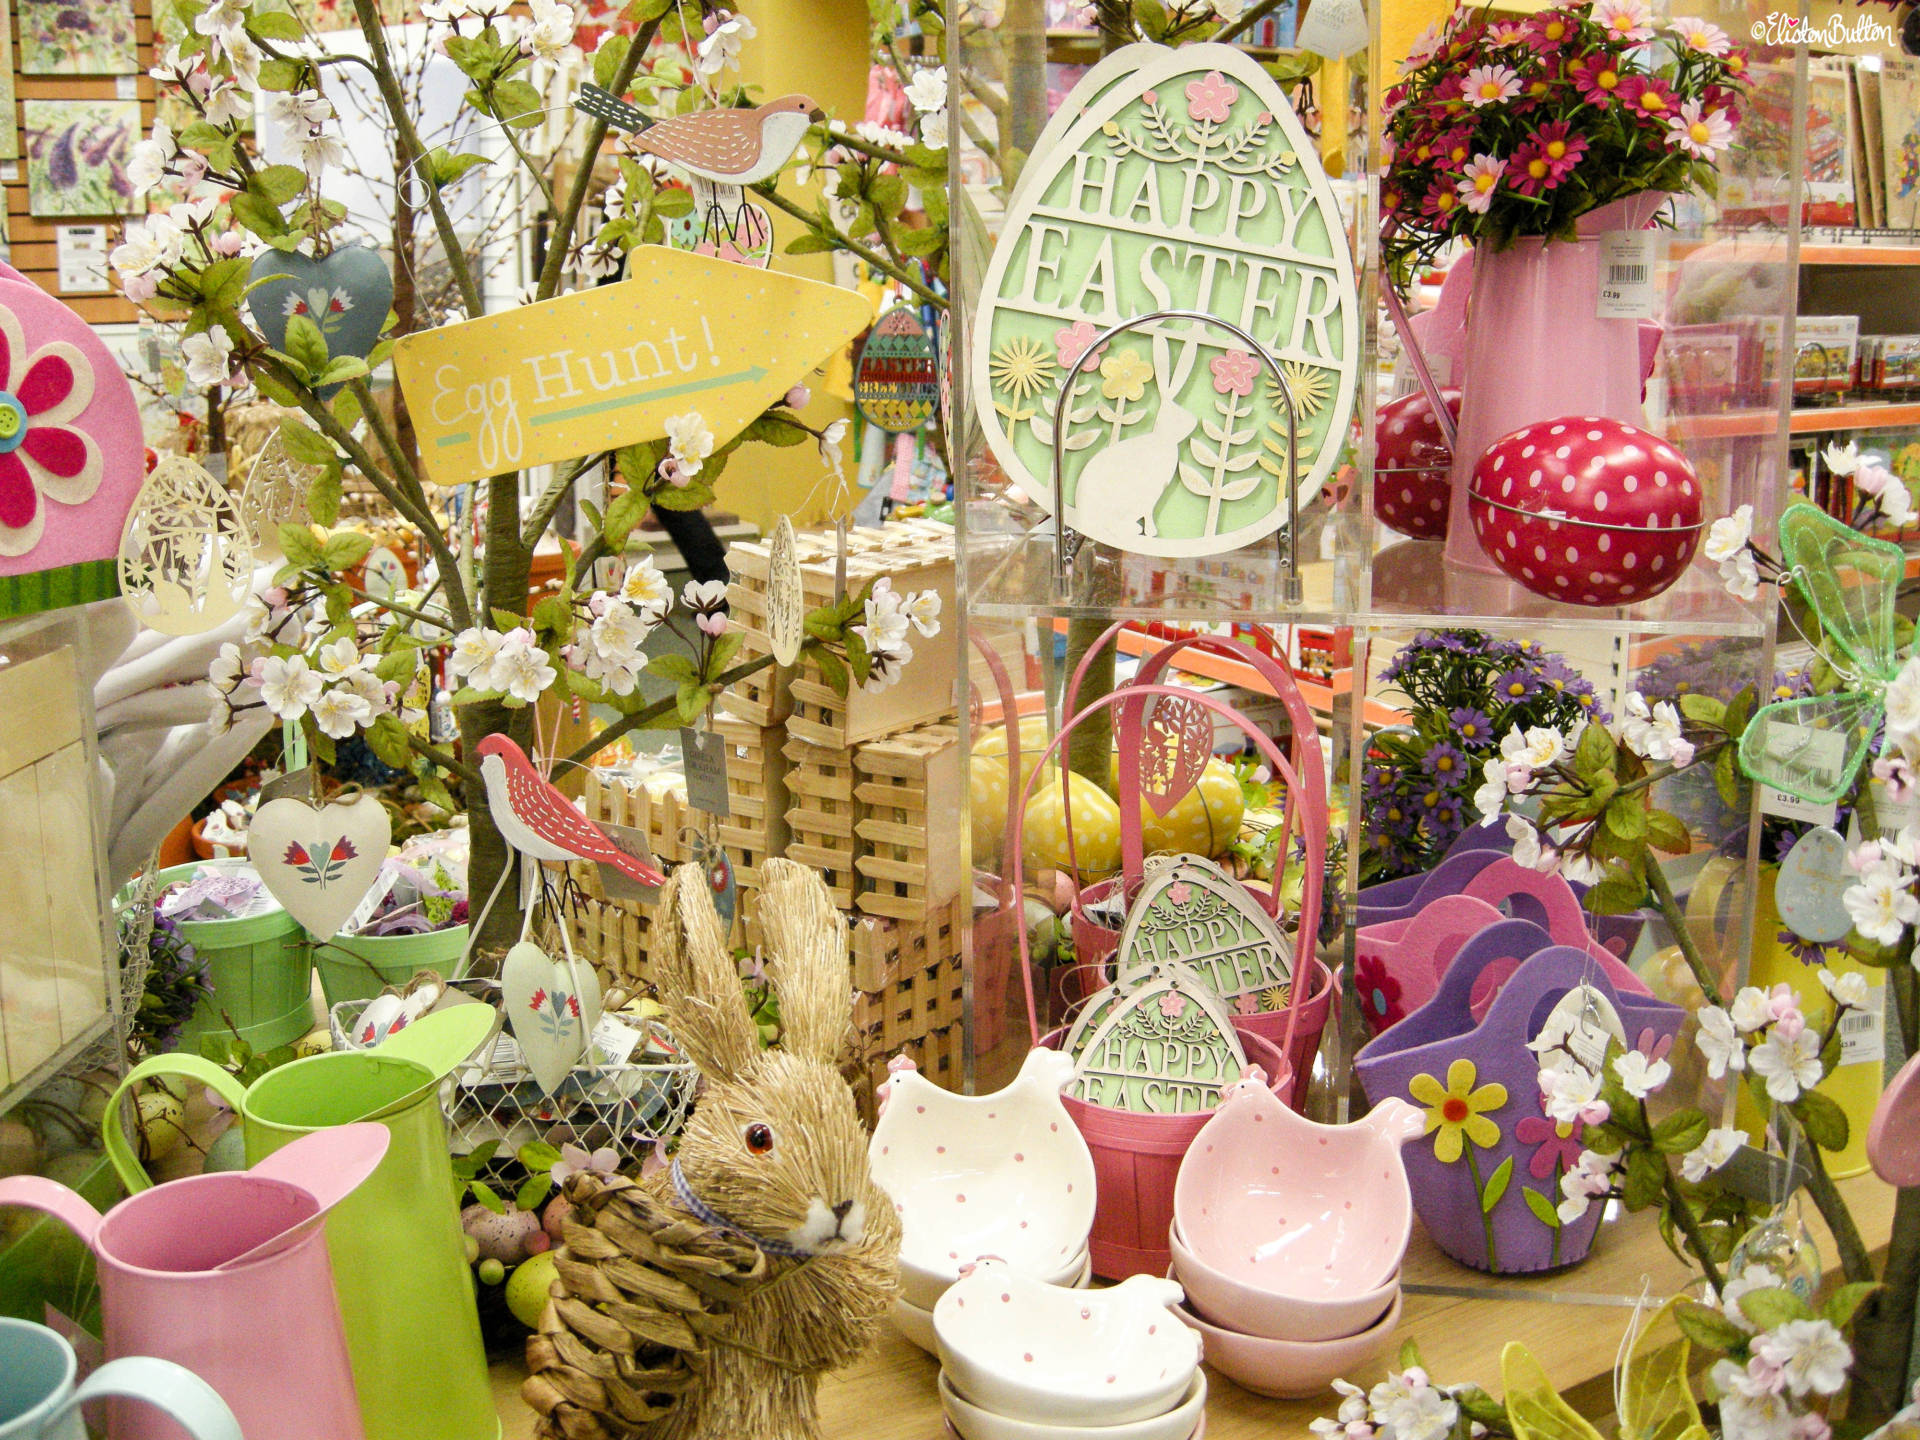 Springtime and Easter Display, Easter Egg Hunt, Pastel Colours and Pretty Florals - For the Love of...Spring at www.elistonbutton.com - Eliston Button - That Crafty Kid – Art, Design, Craft & Adventure.